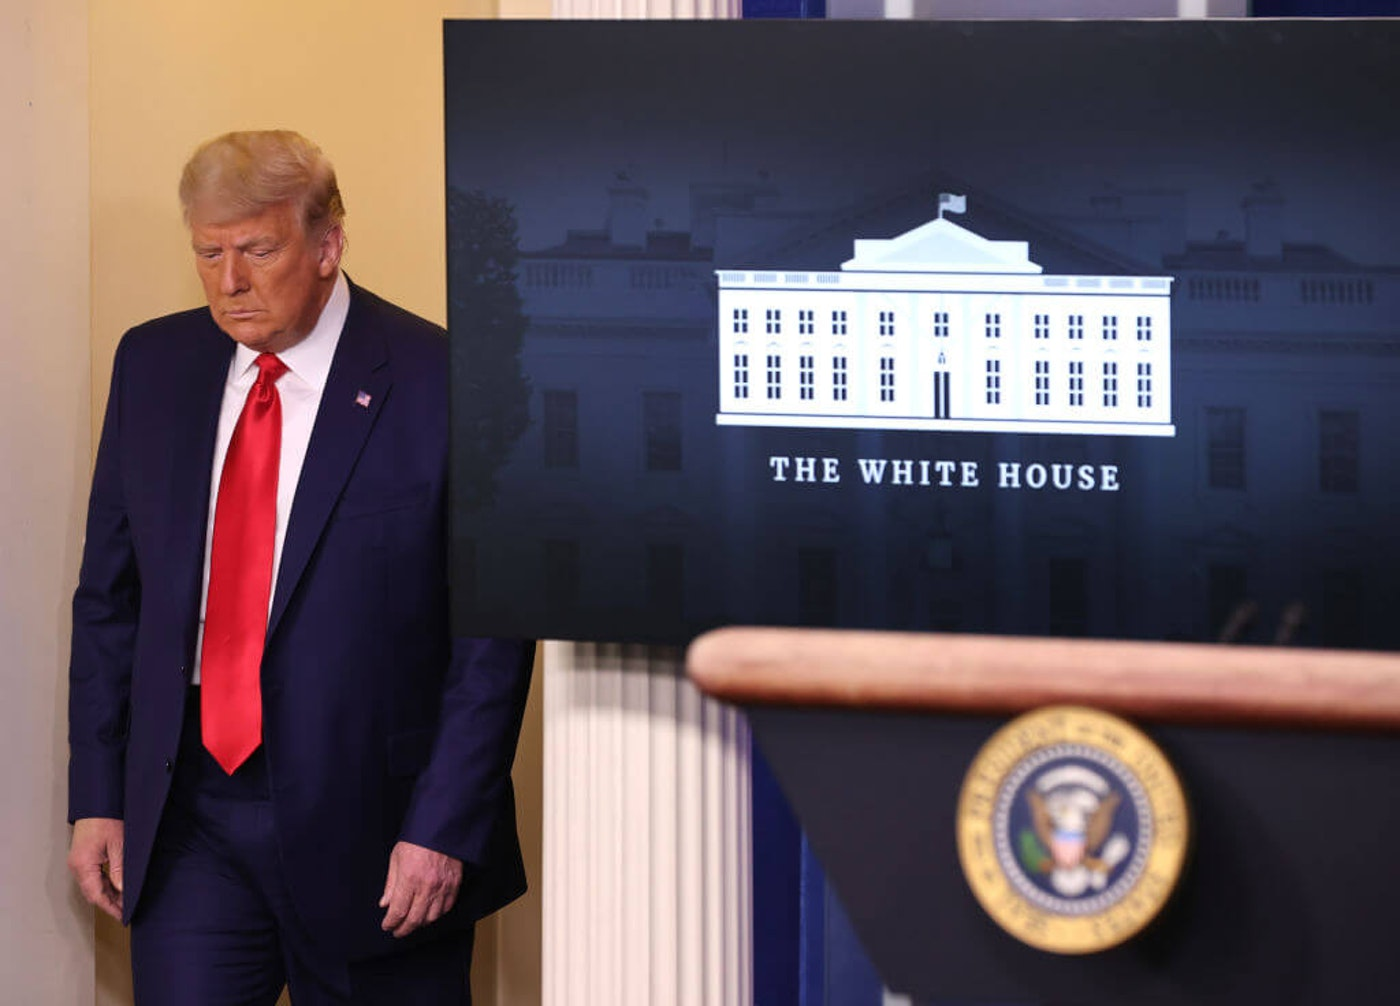 WASHINGTON, DC - NOVEMBER 24: U.S. President Donald Trump arrives to speak to the press in the James Brady Press Briefing Room at the White House on November 24, 2020 in Washington, DC. Trump made brief remarks about the stock market hitting 30,000. (Photo by Chip Somodevilla/Getty Images)